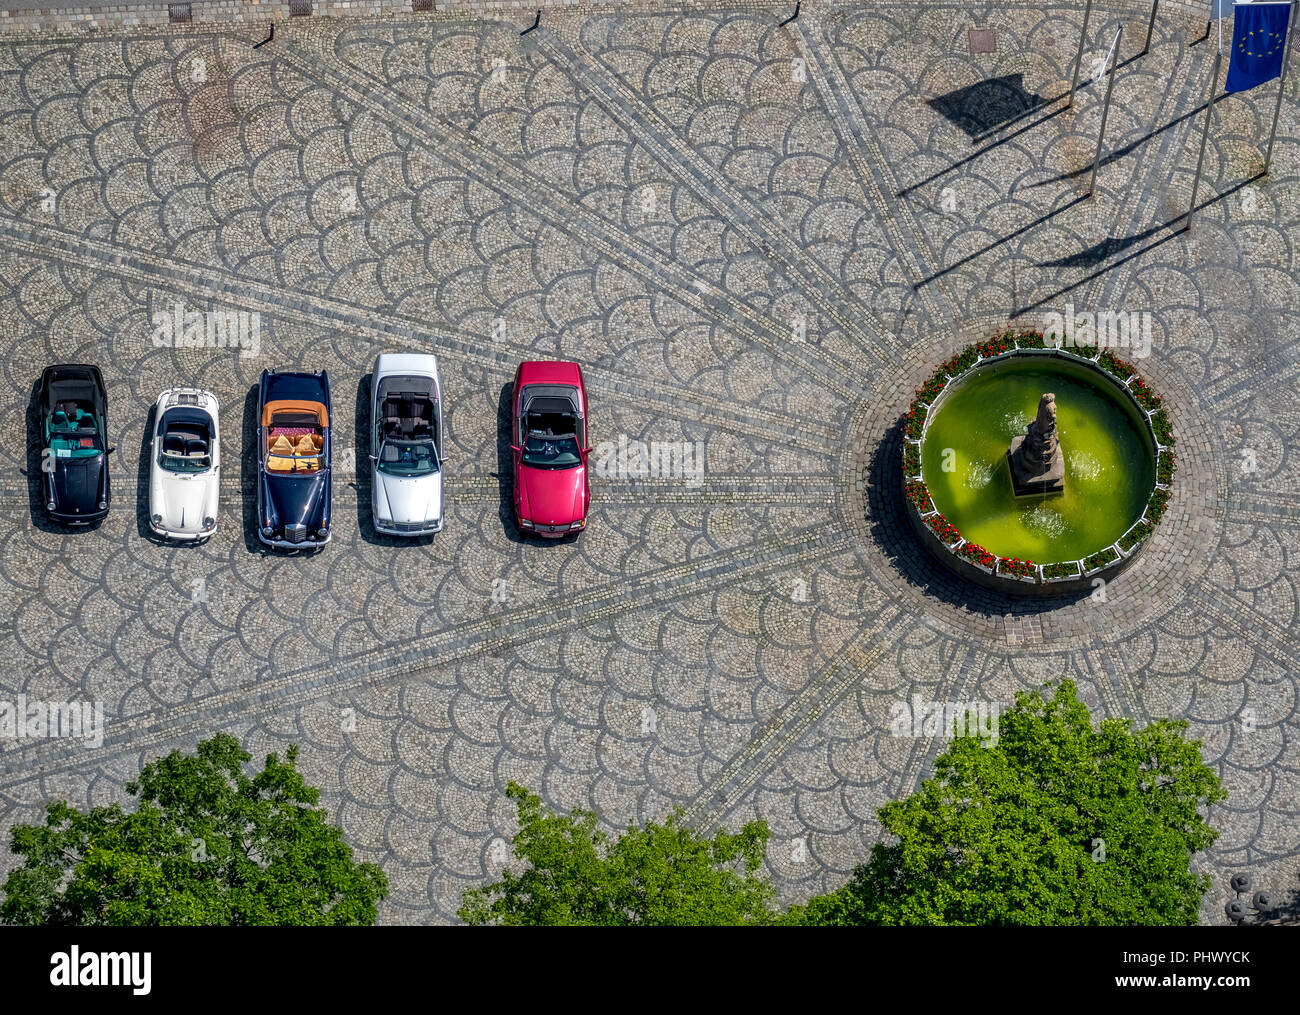 historic pictures of four vintage convertibles at Petrusbrunnen, Autoralley, vintage Porsche and Mercedes convertible, Kump, Brilon, Sauerland, North  - Stock Image